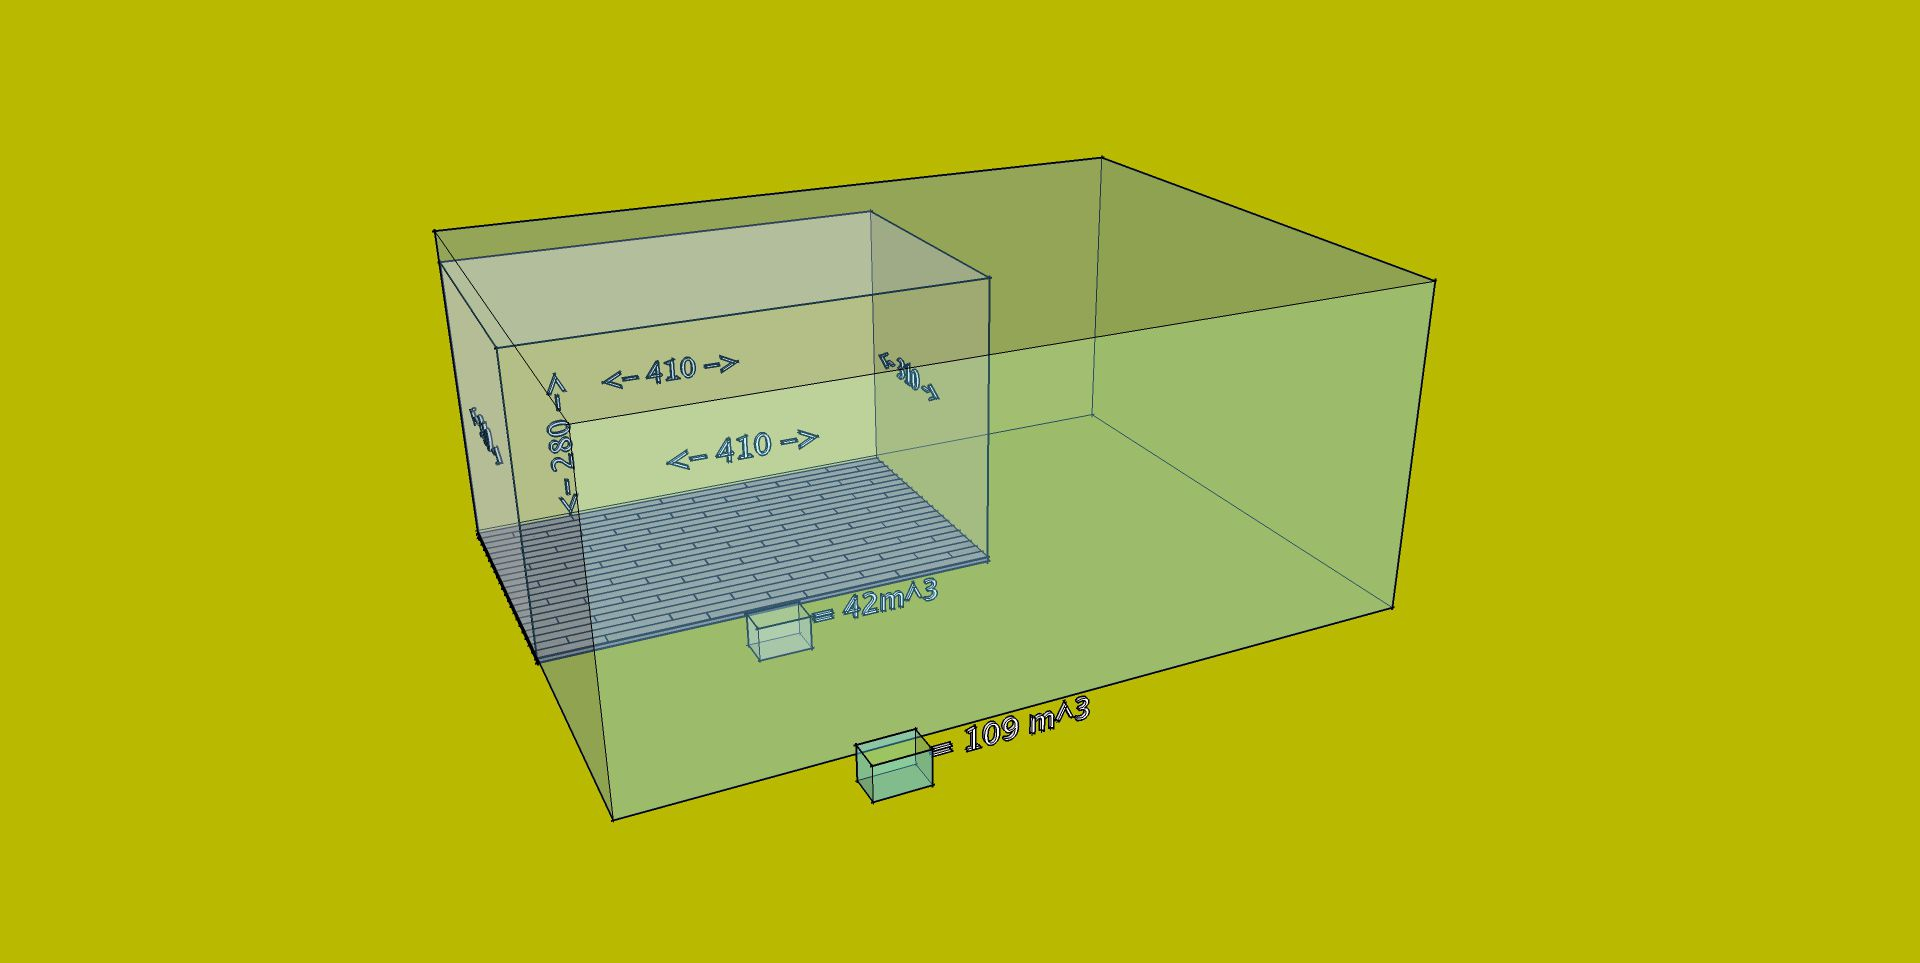 Part_1_Fig_4_Small_Ideal_Room_Compare.jpg